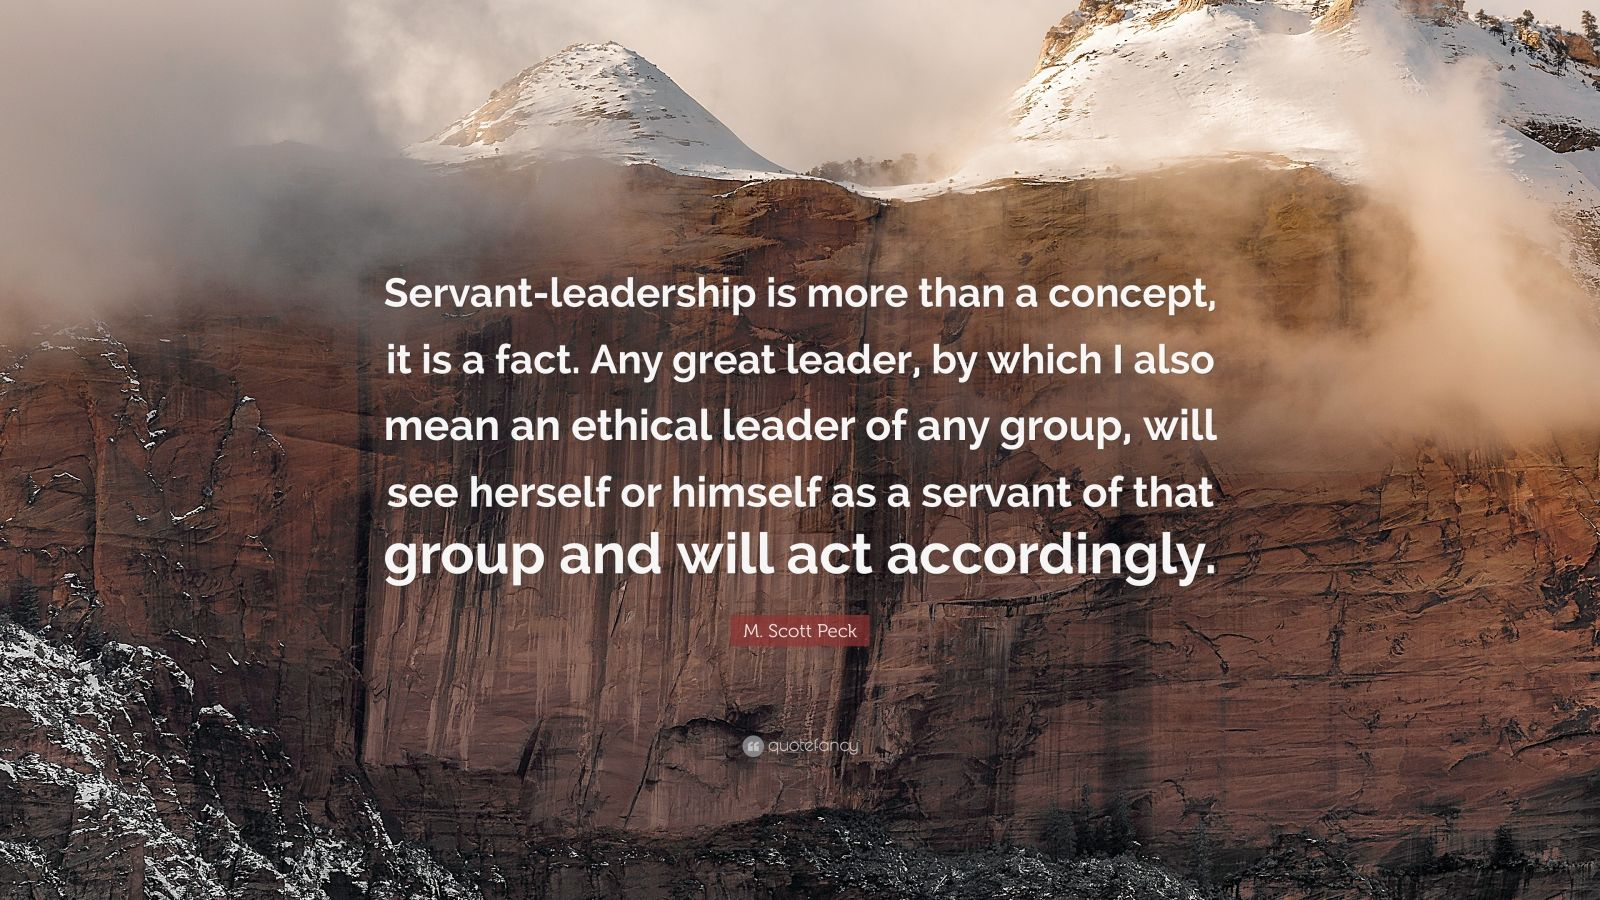 "M. Scott Peck Quote: ""Servant-leadership is more than a concept, it is a fact. Any great leader, by which I also mean an ethical leader of any group, will see herself or himself as a servant of that group and will act accordingly."""